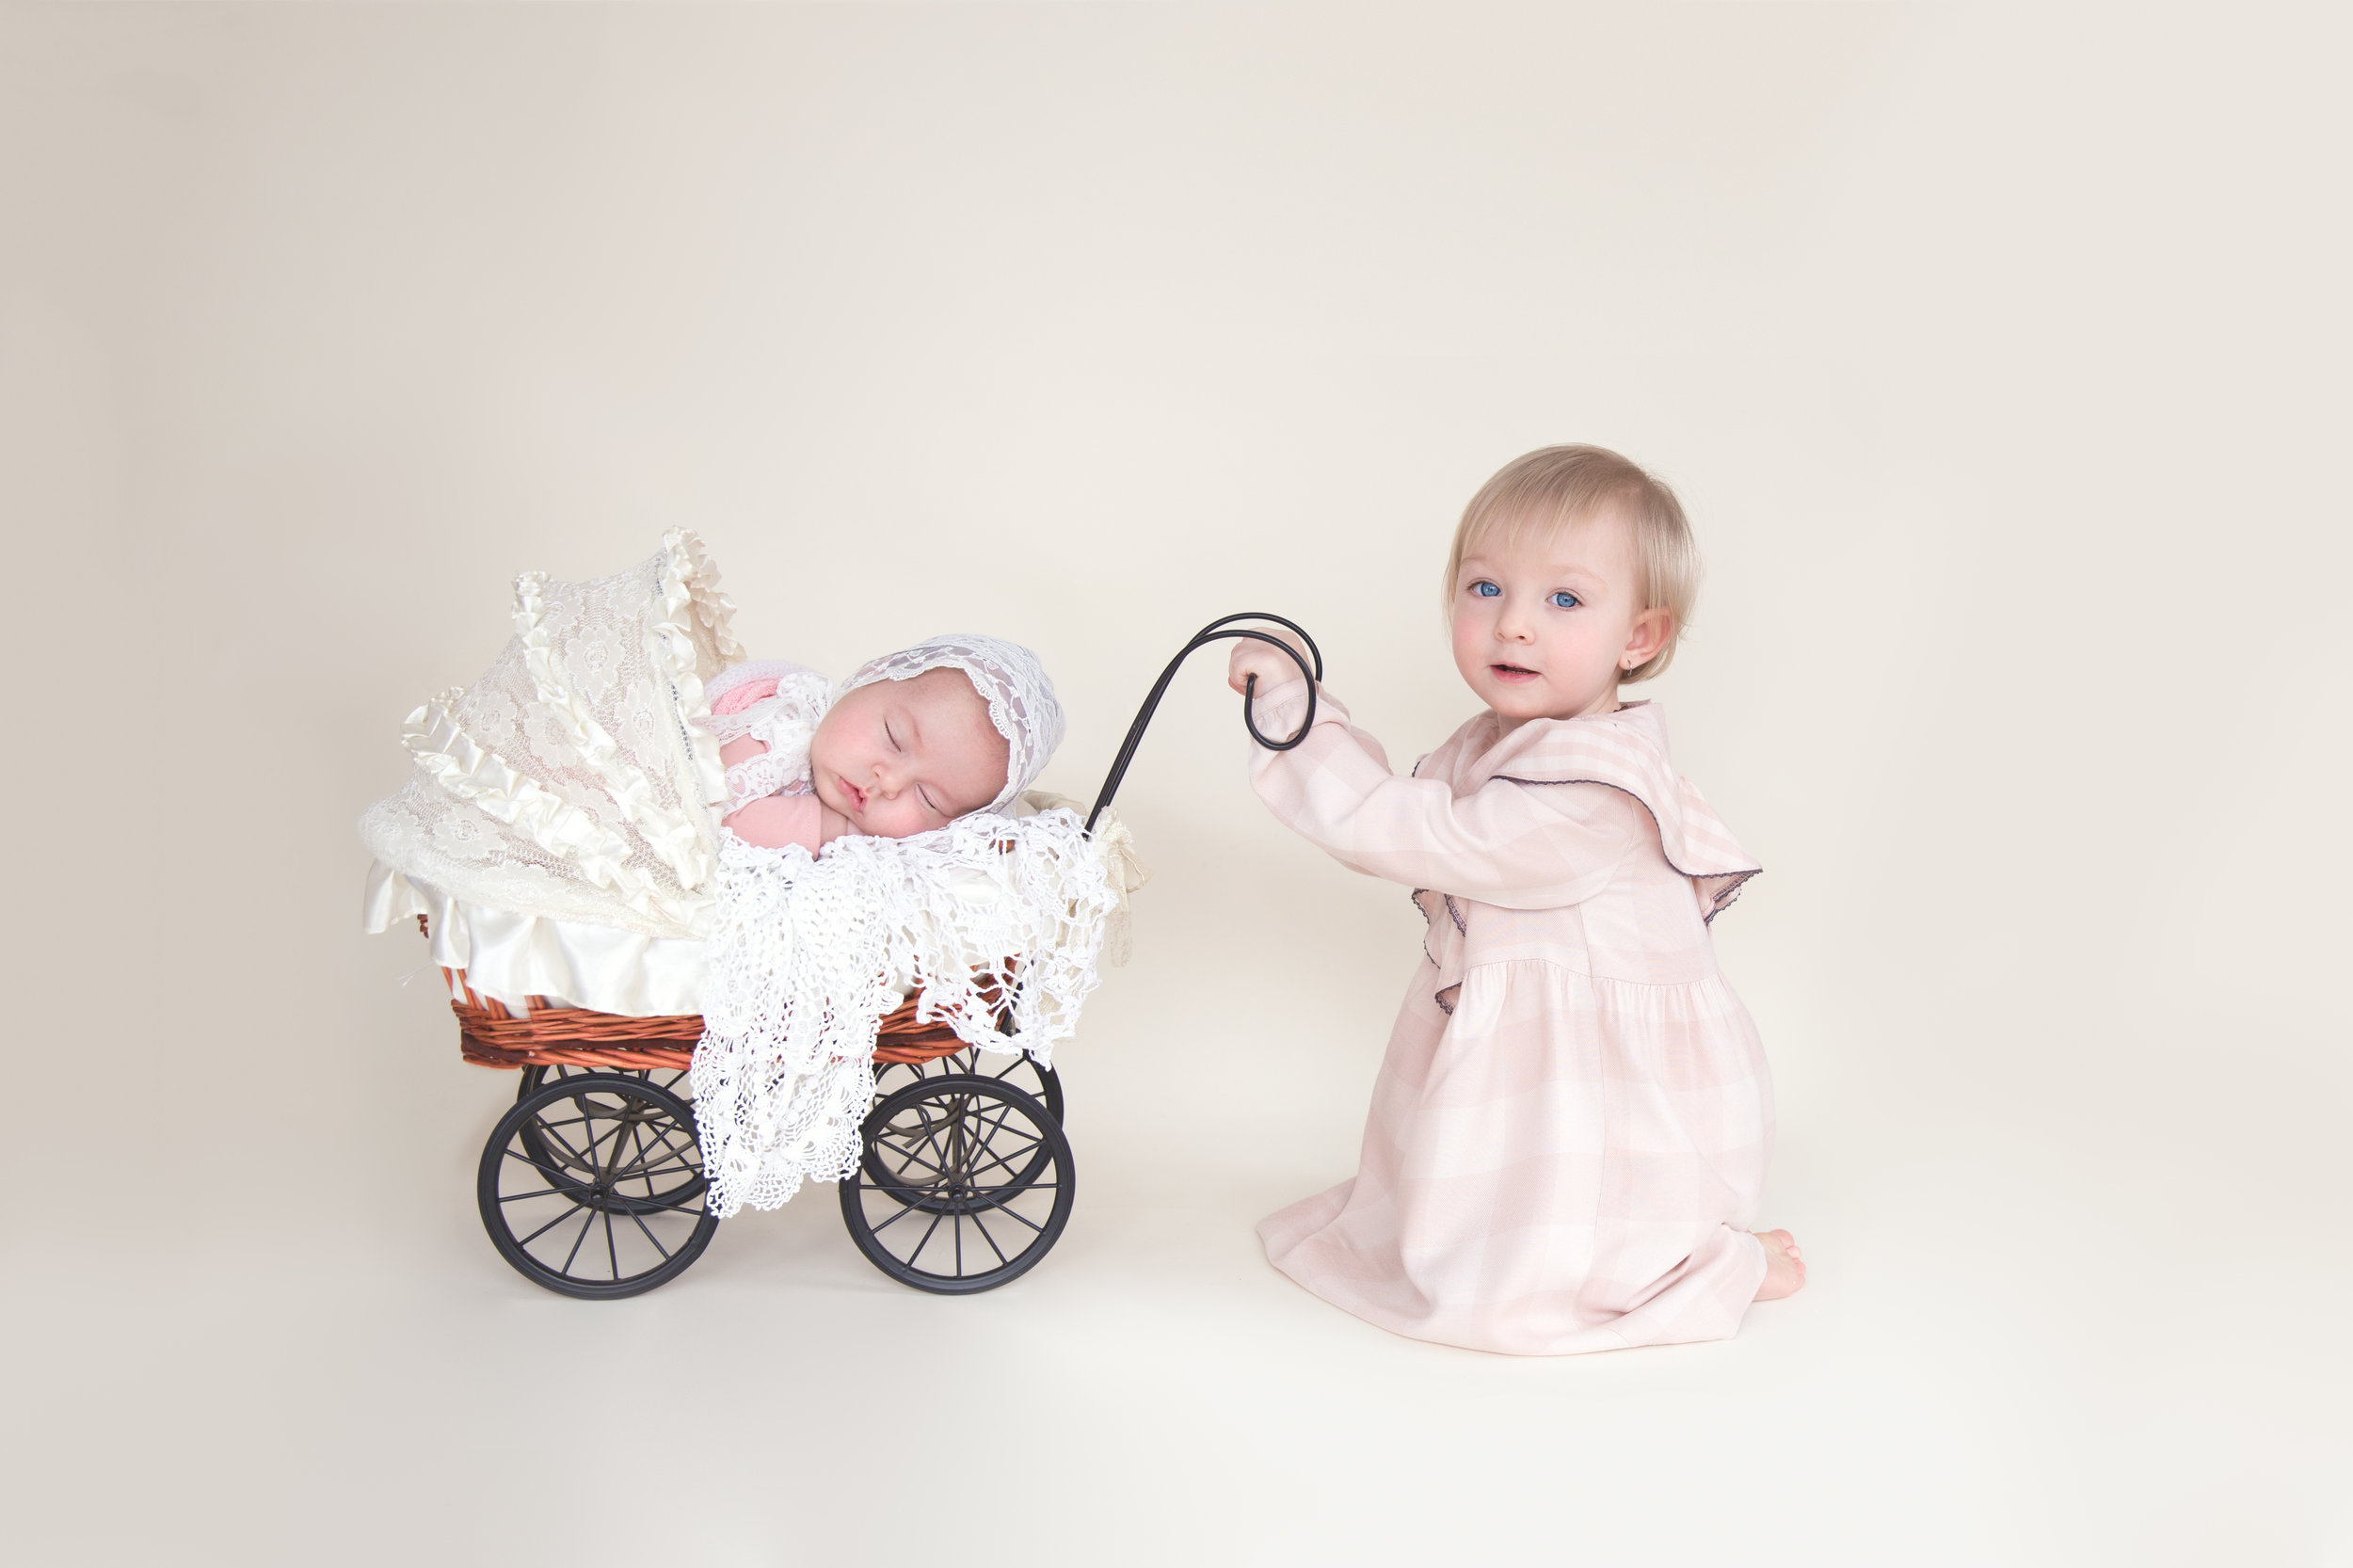 Baby girl in a stroller with her sister kneeling beside her. Newborn photographer in Calgary and Airdrie, Alberta.